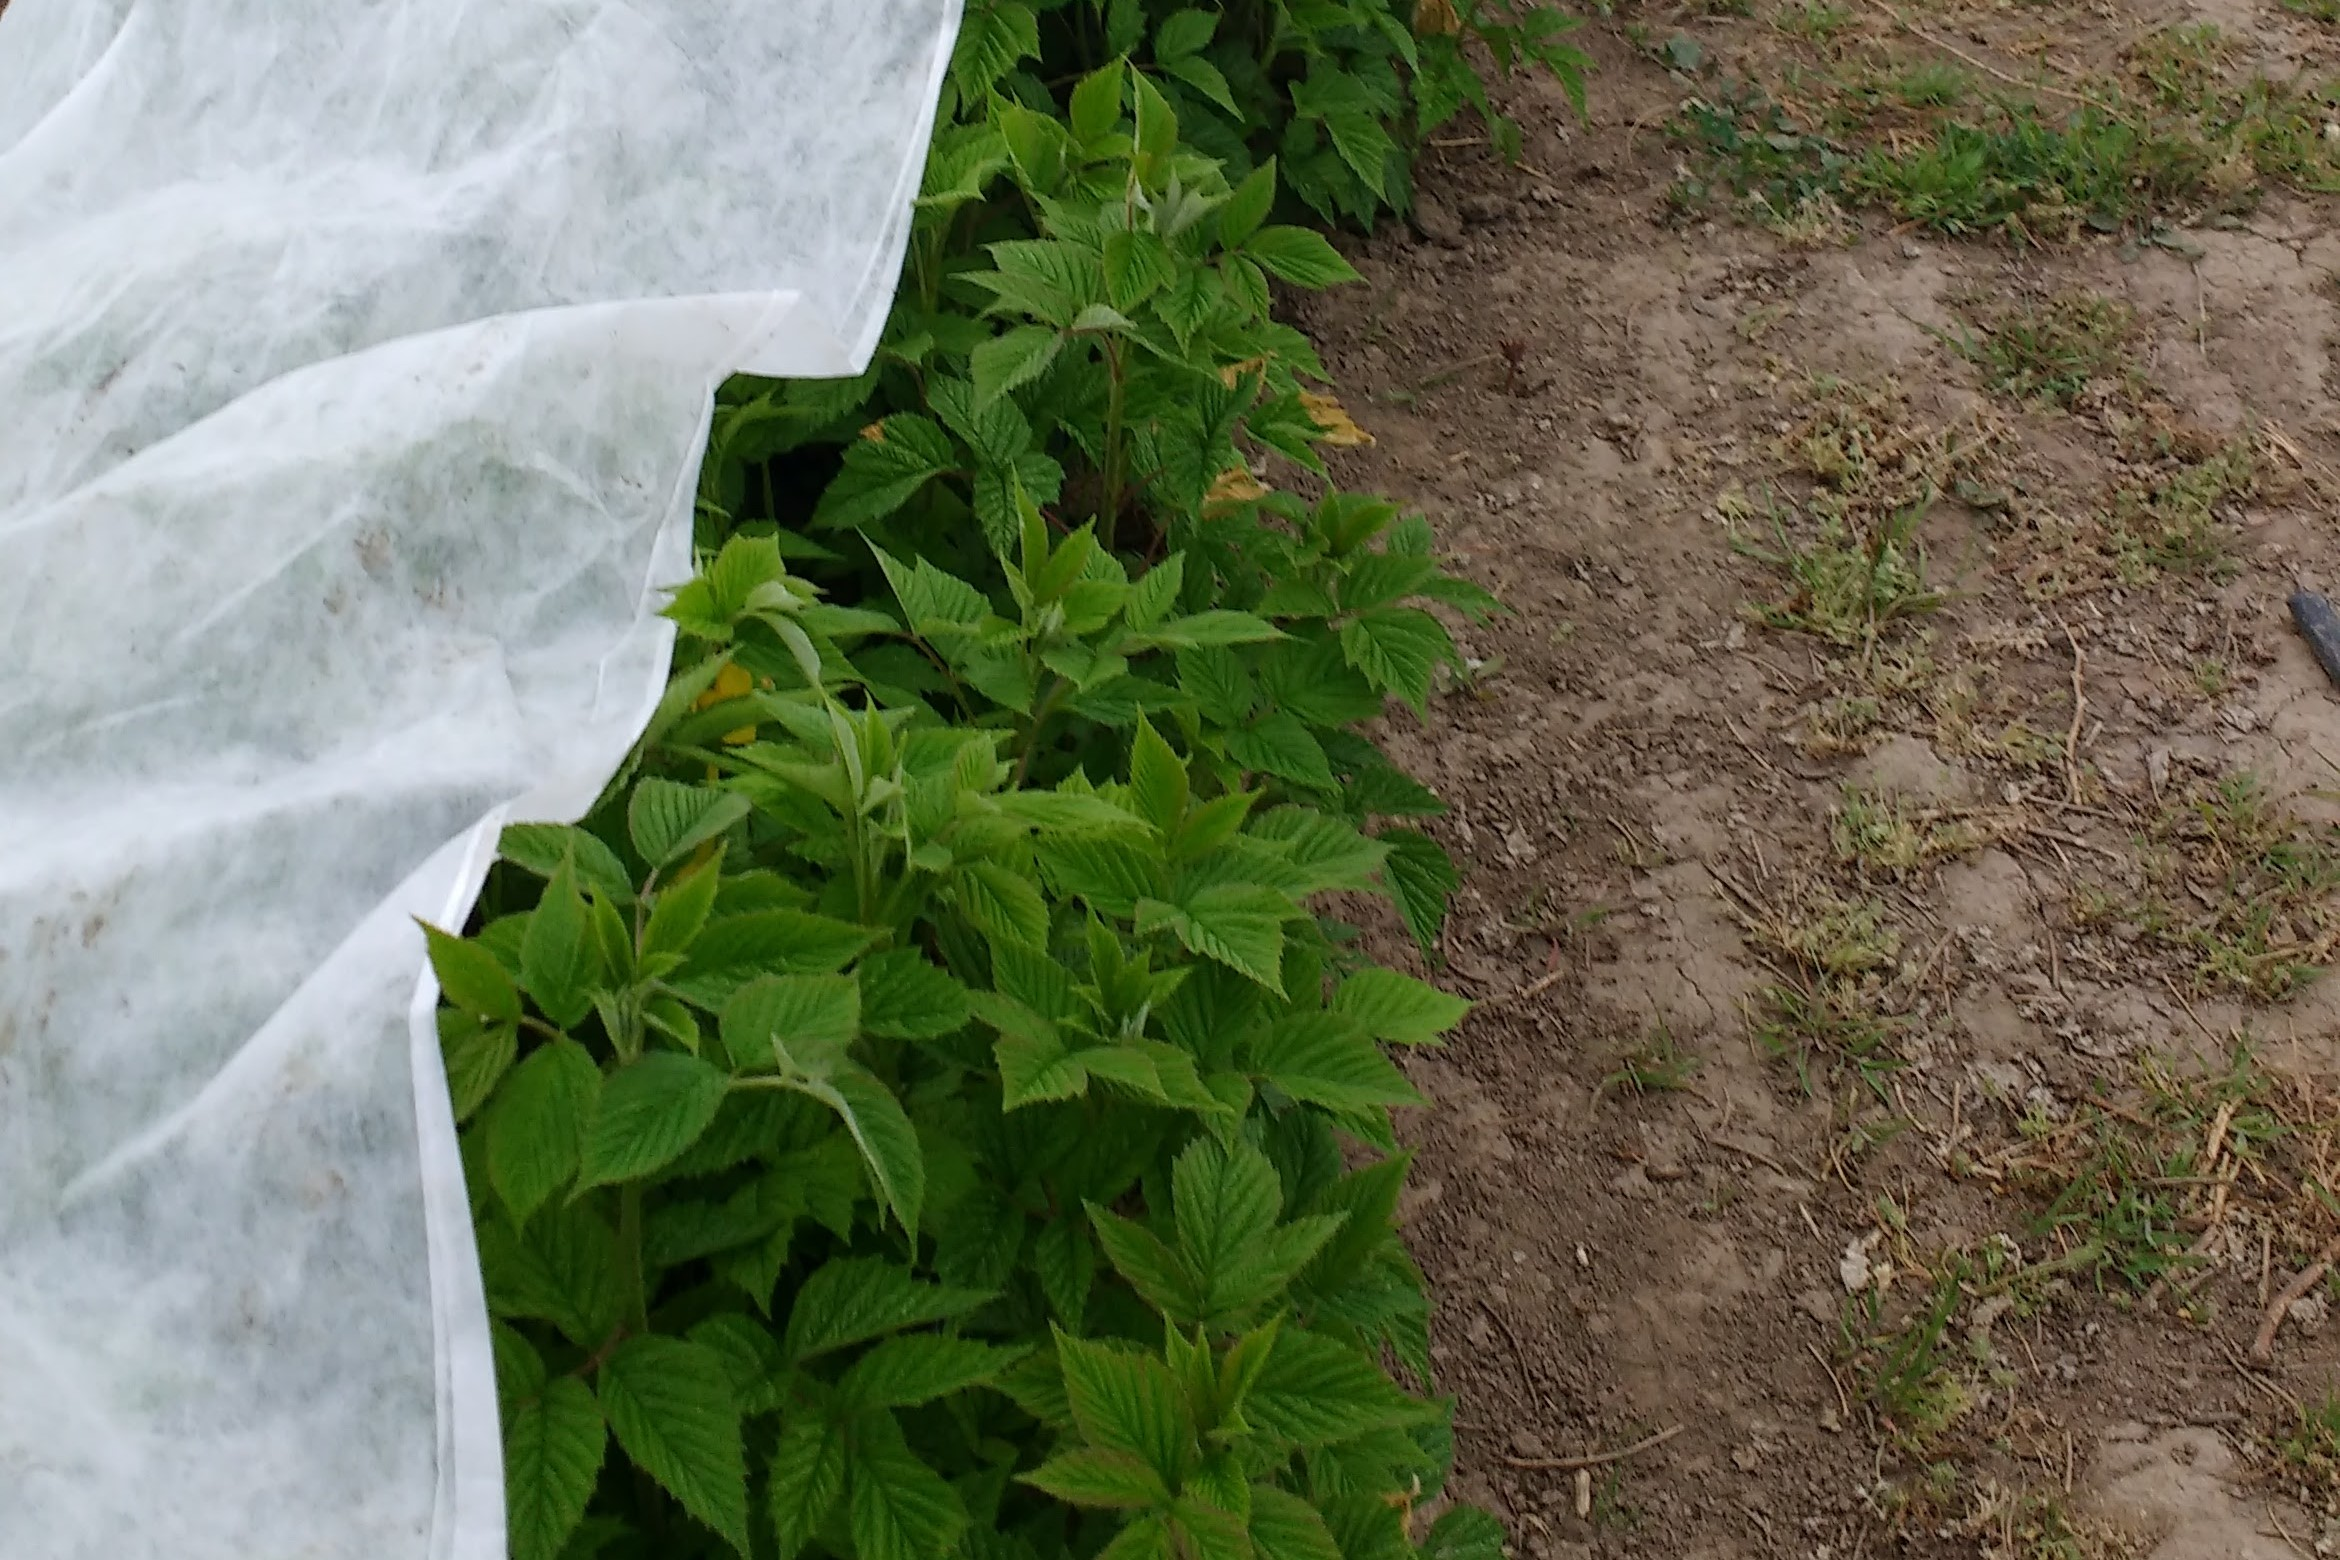 Raspberry canes growing under row cover